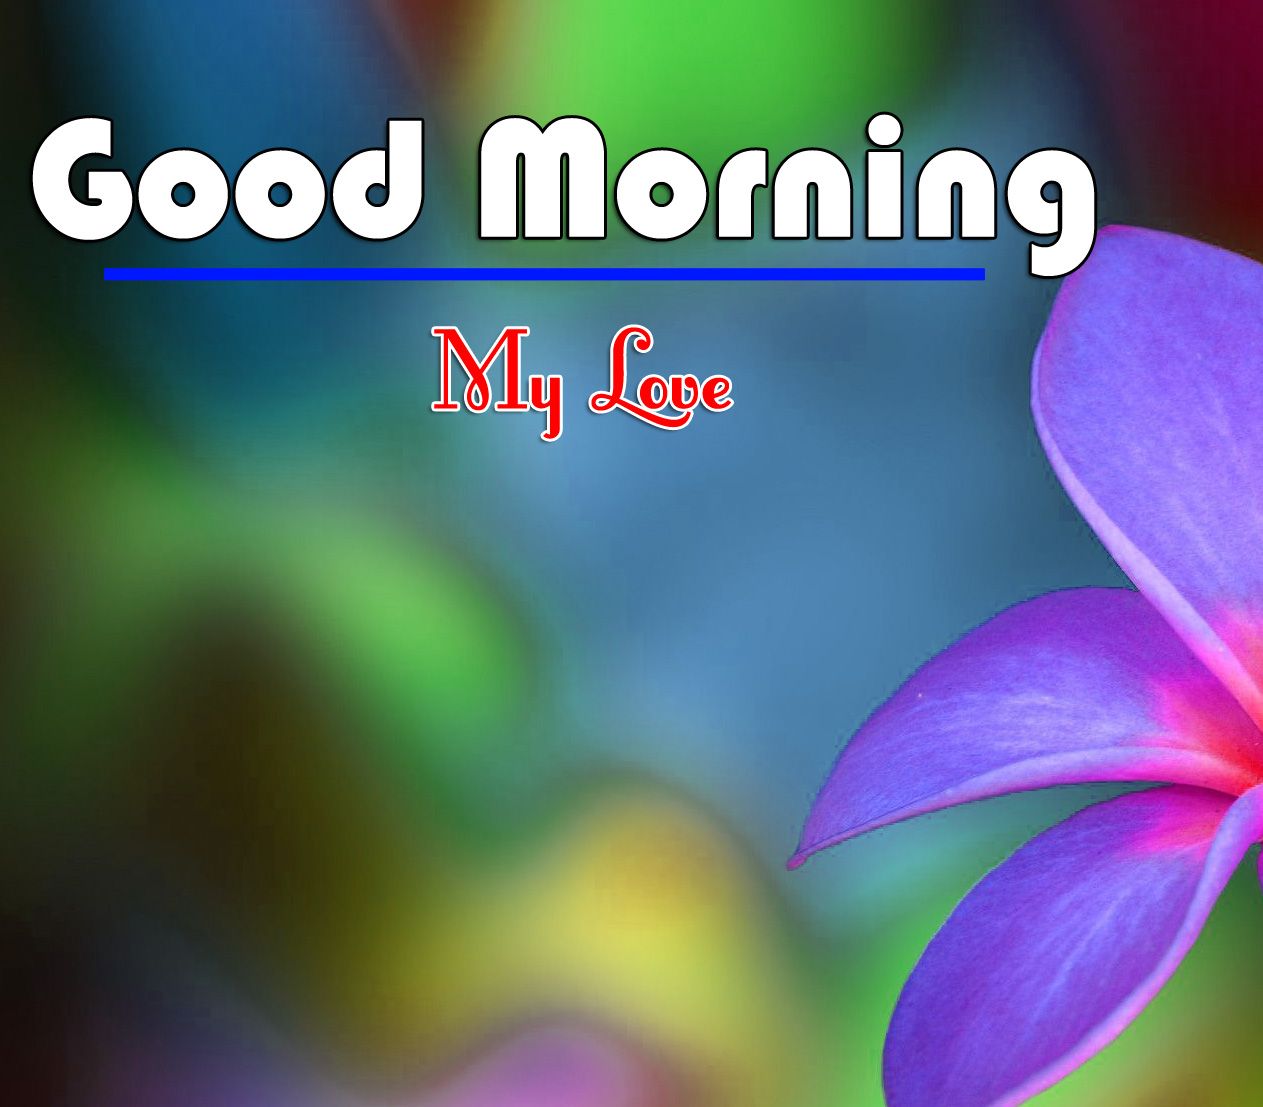 Free Good Morning Wishes Images Pics Download for Facebook